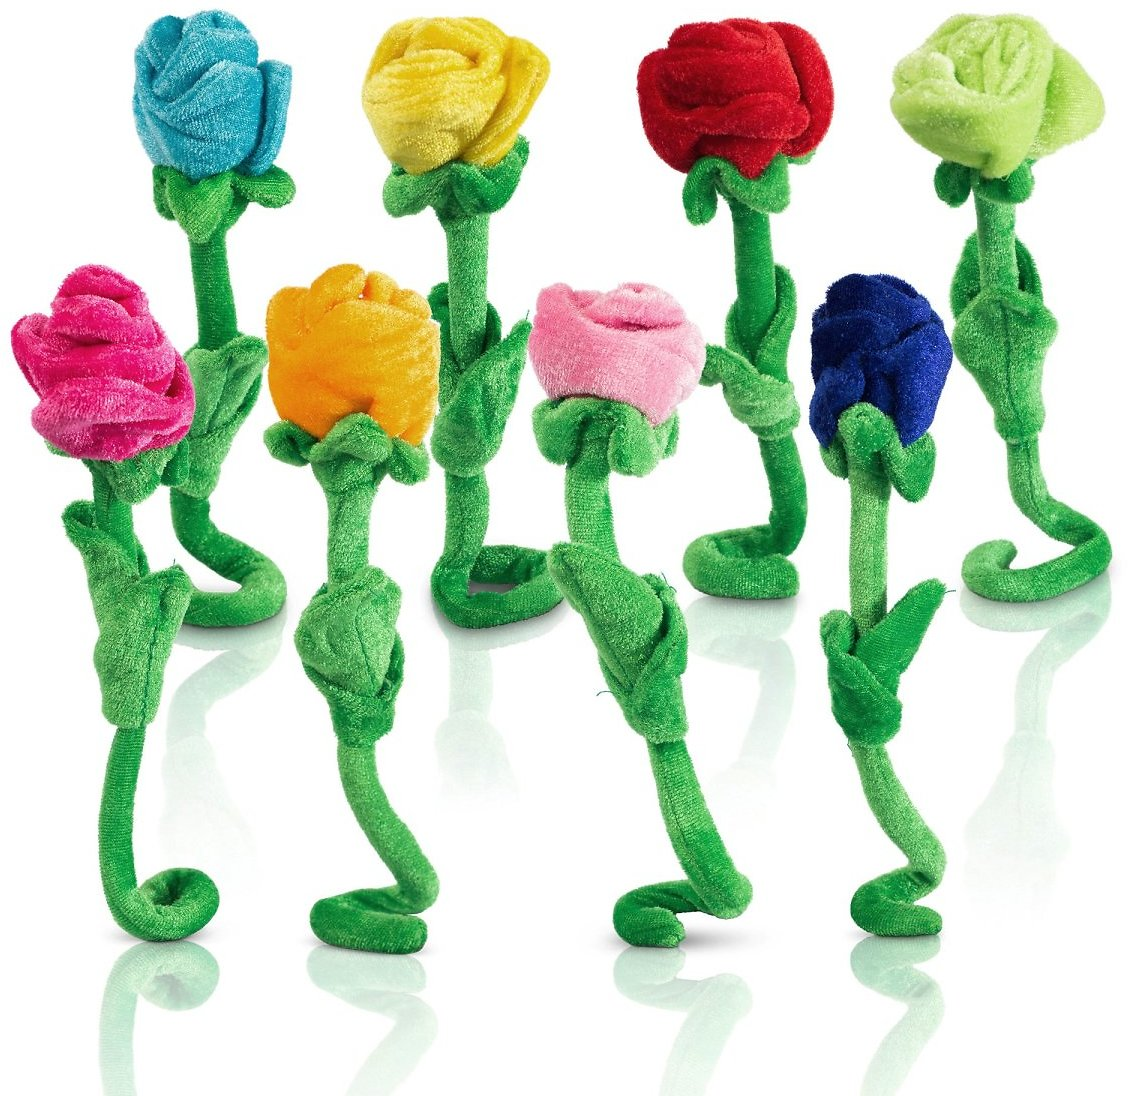 50% OFF- Set Of 8 Rose Plush Colorful Soft Stuffed Flowers Toy With Bendable Stems For Kids $5.49